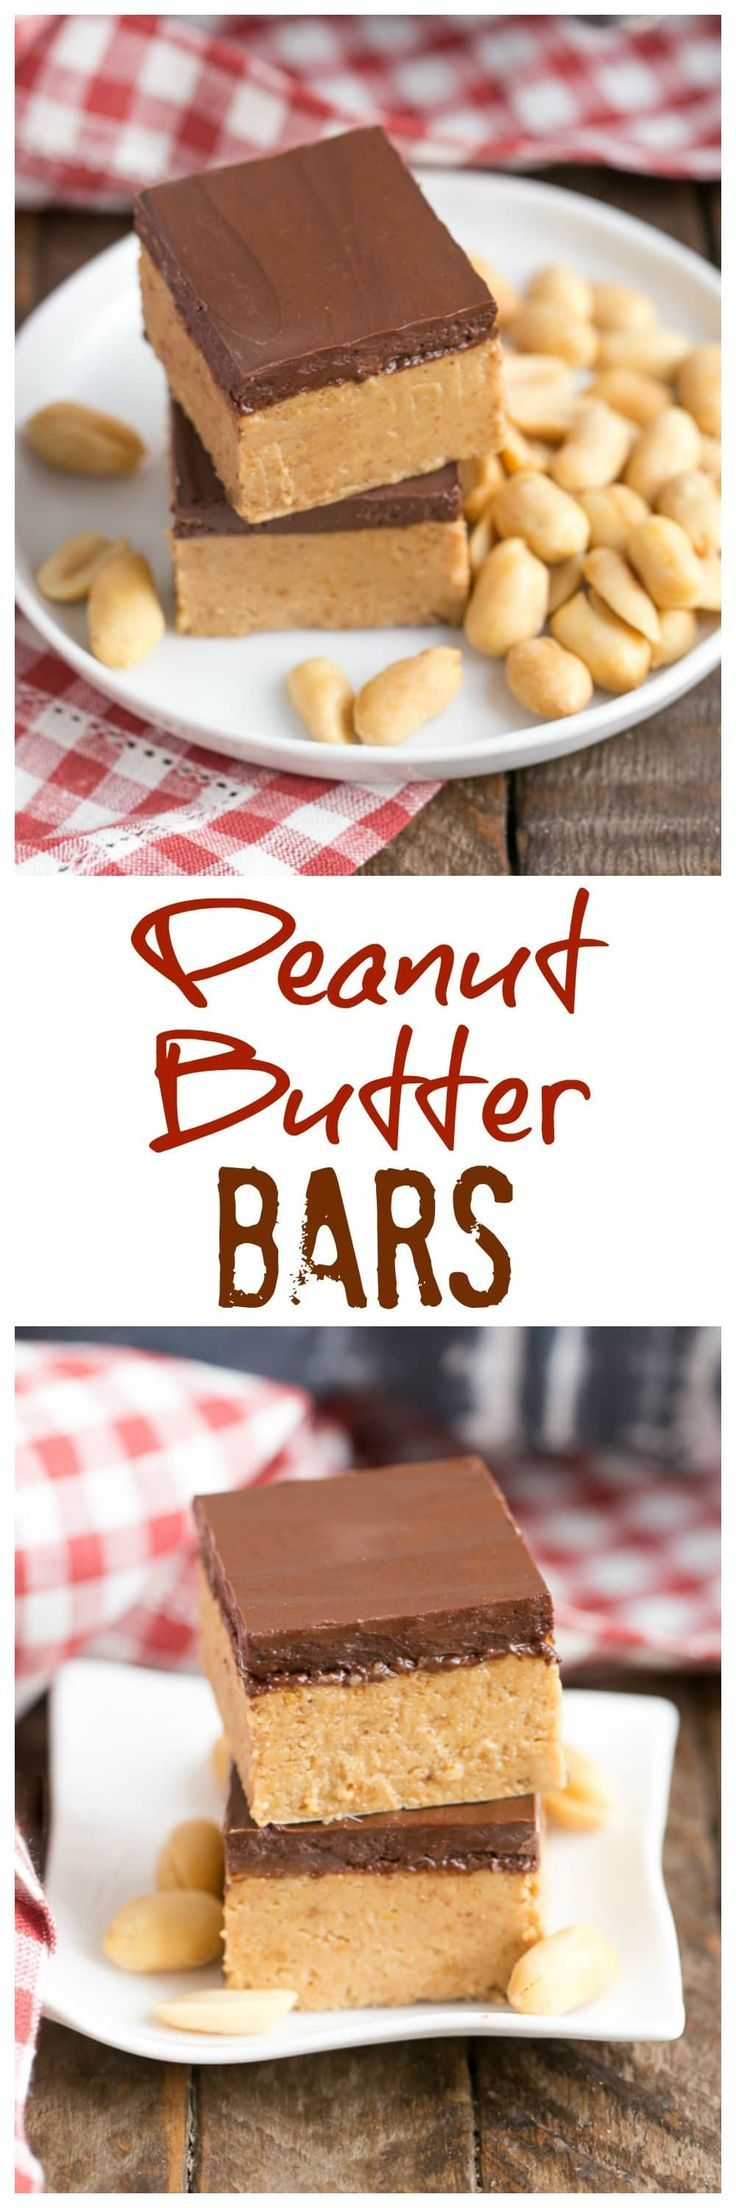 Better Than Reese's Peanut Butter Bars | Easy No-Bake Bars that provide your Reese's fix!!! #peanutbutter #Reeses #desserts